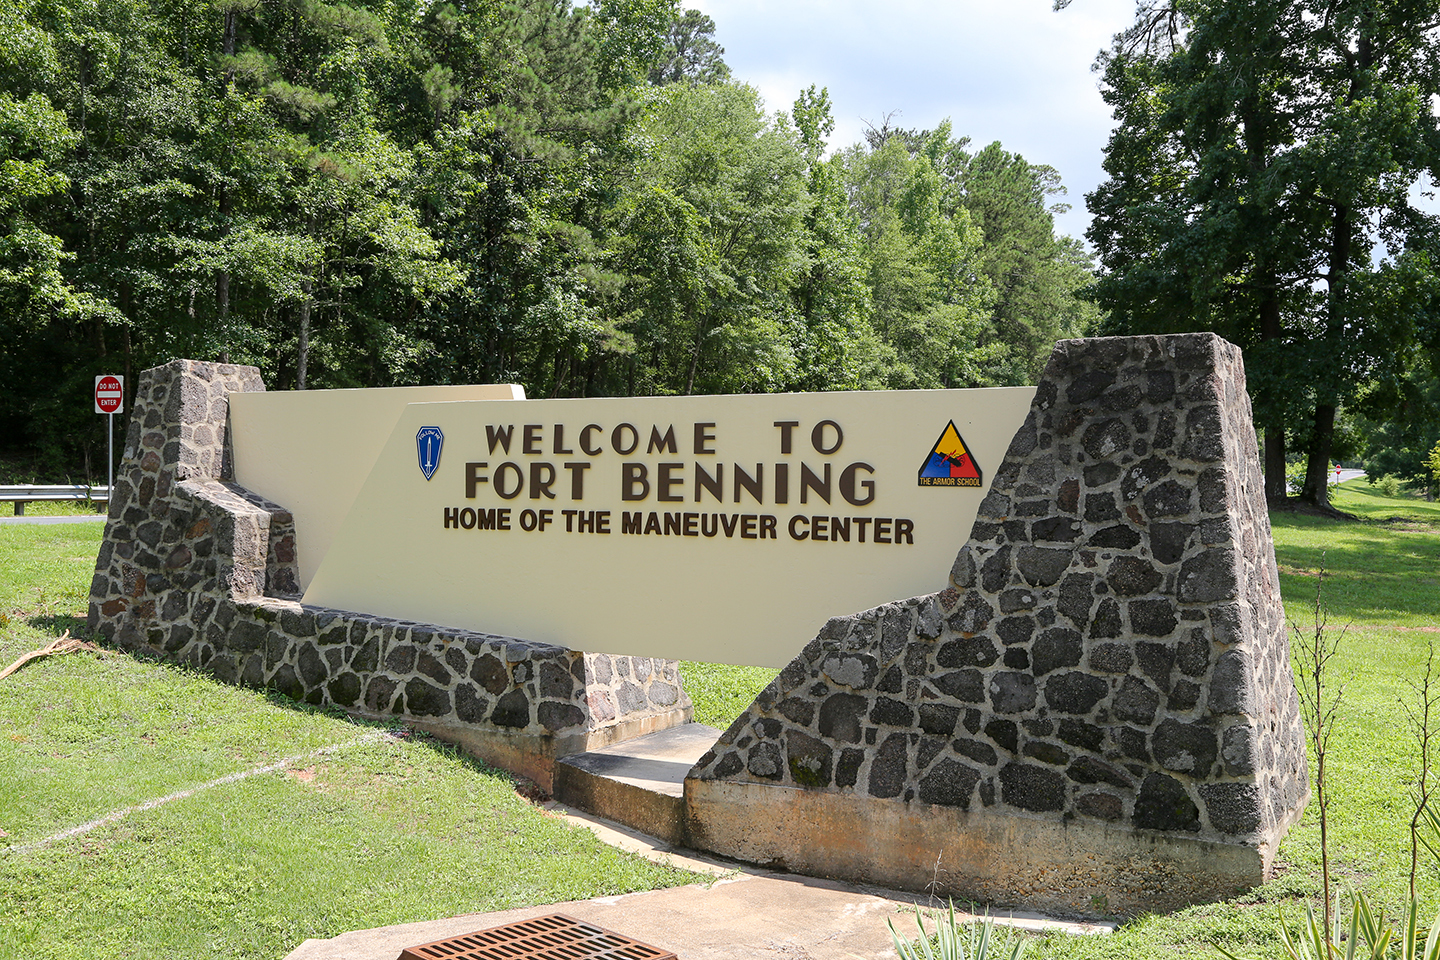 An entrance sign to Fort Benning